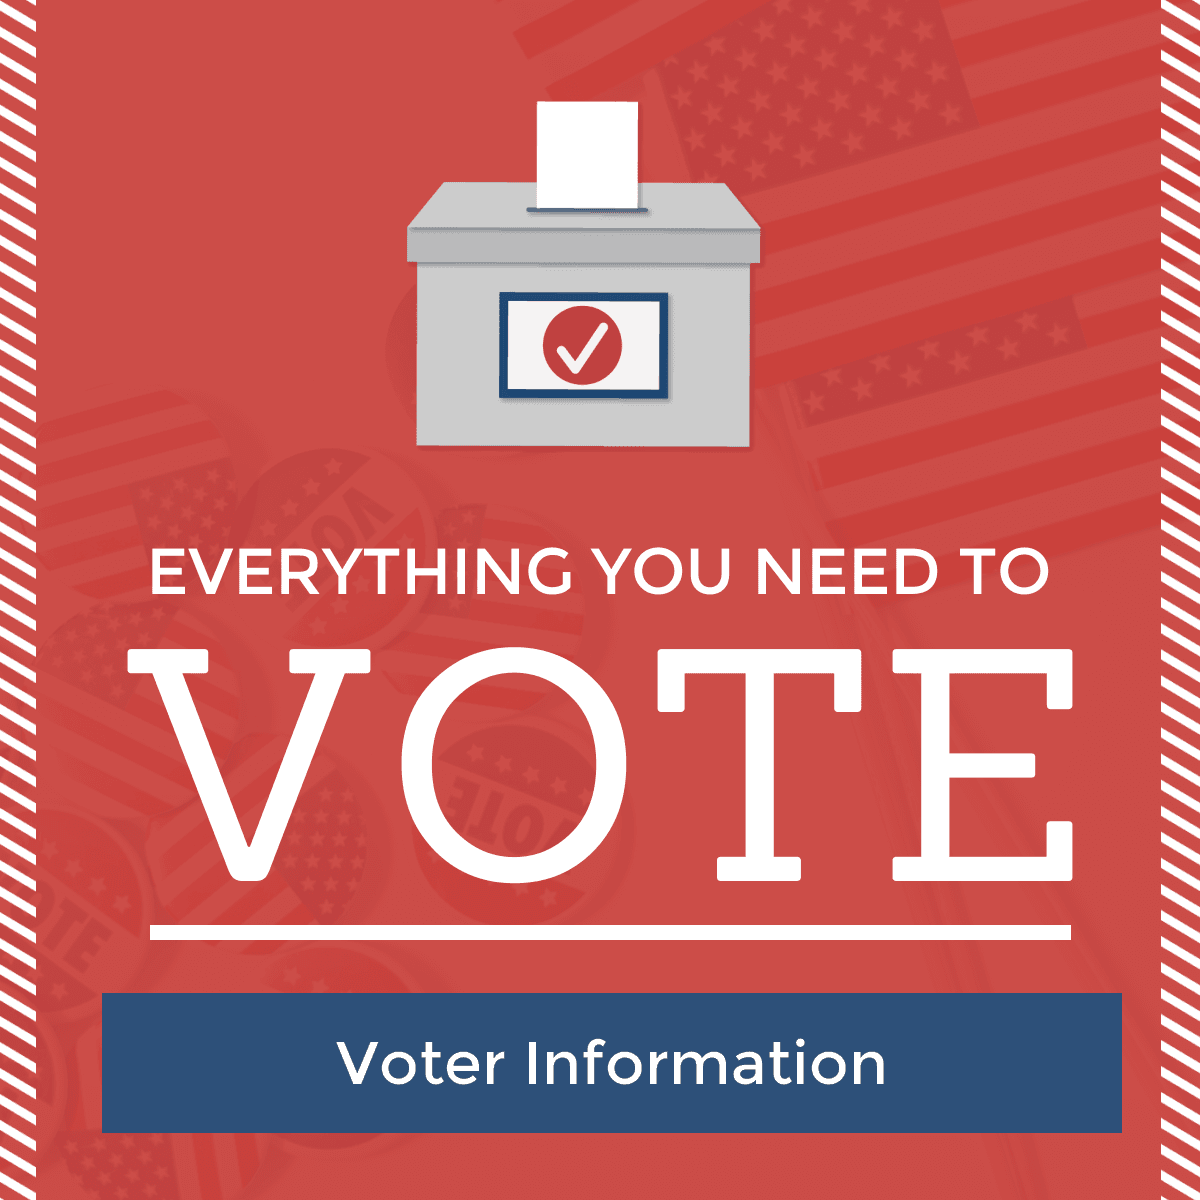 everything you need to vote - voter information